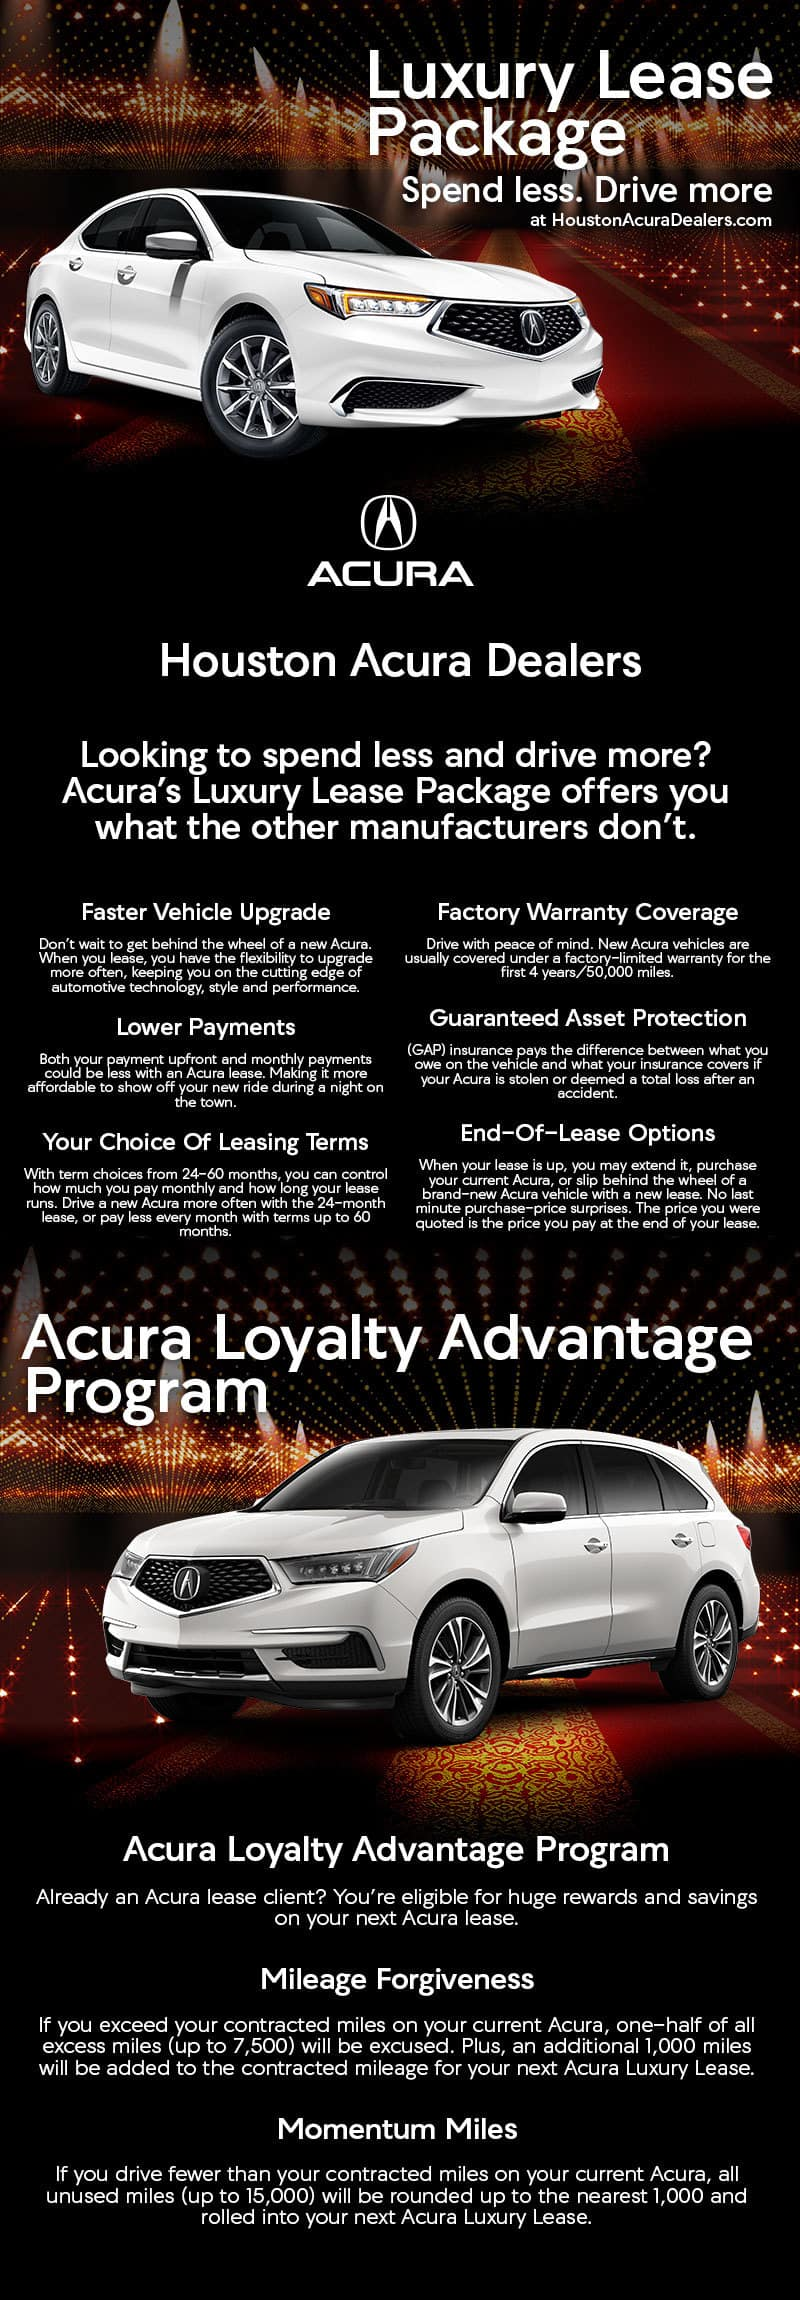 beaumont used mitula cars acura financing houston dealers ford in classic tx tire price